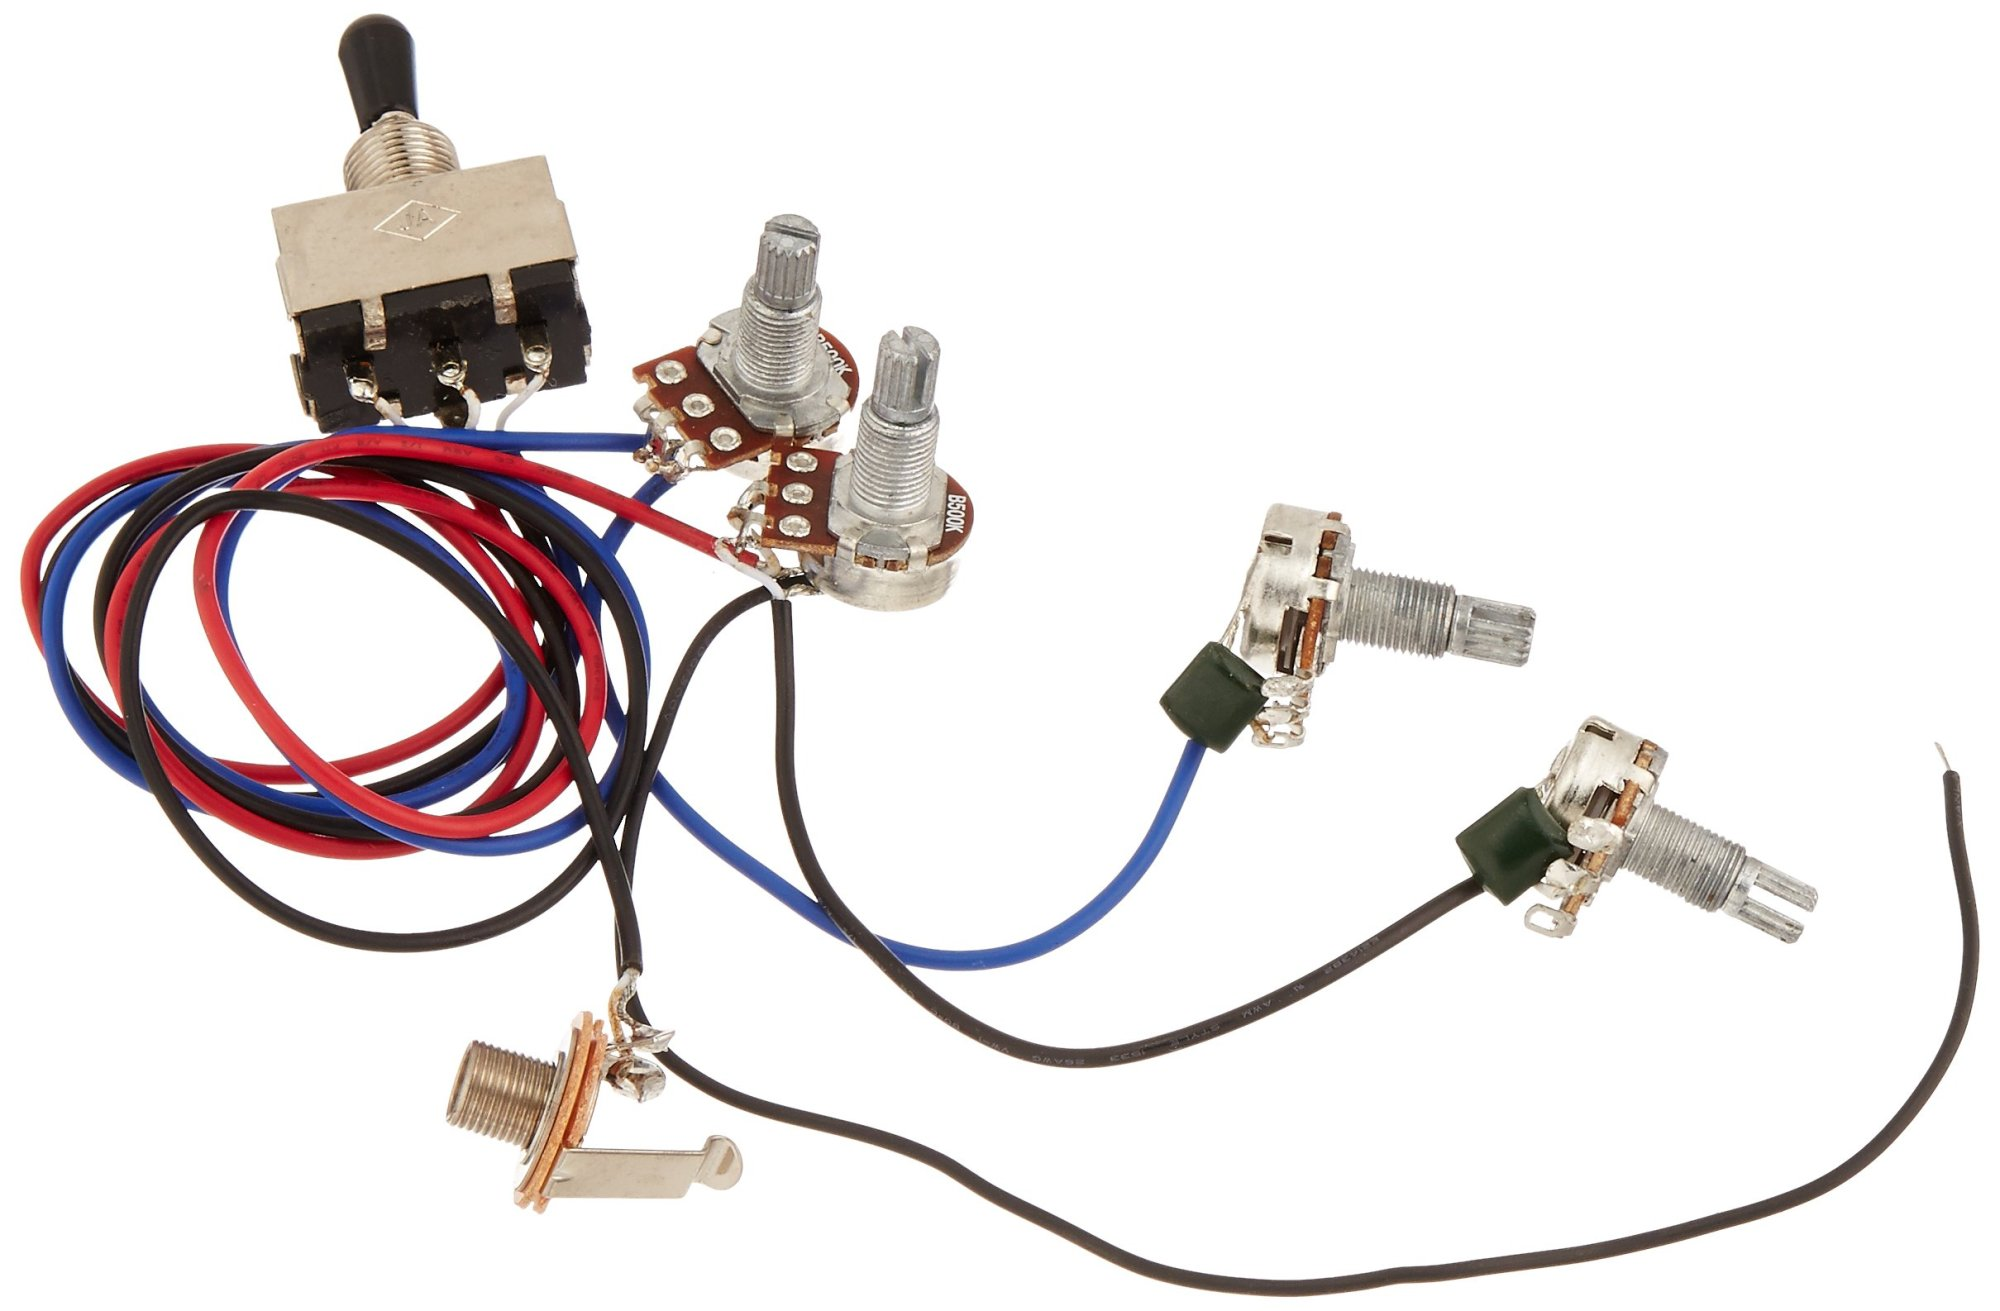 hight resolution of get quotations kmise wiring harness prewired 2v2t 3way toggle switch jack 500k pots for gibson replacement guitar